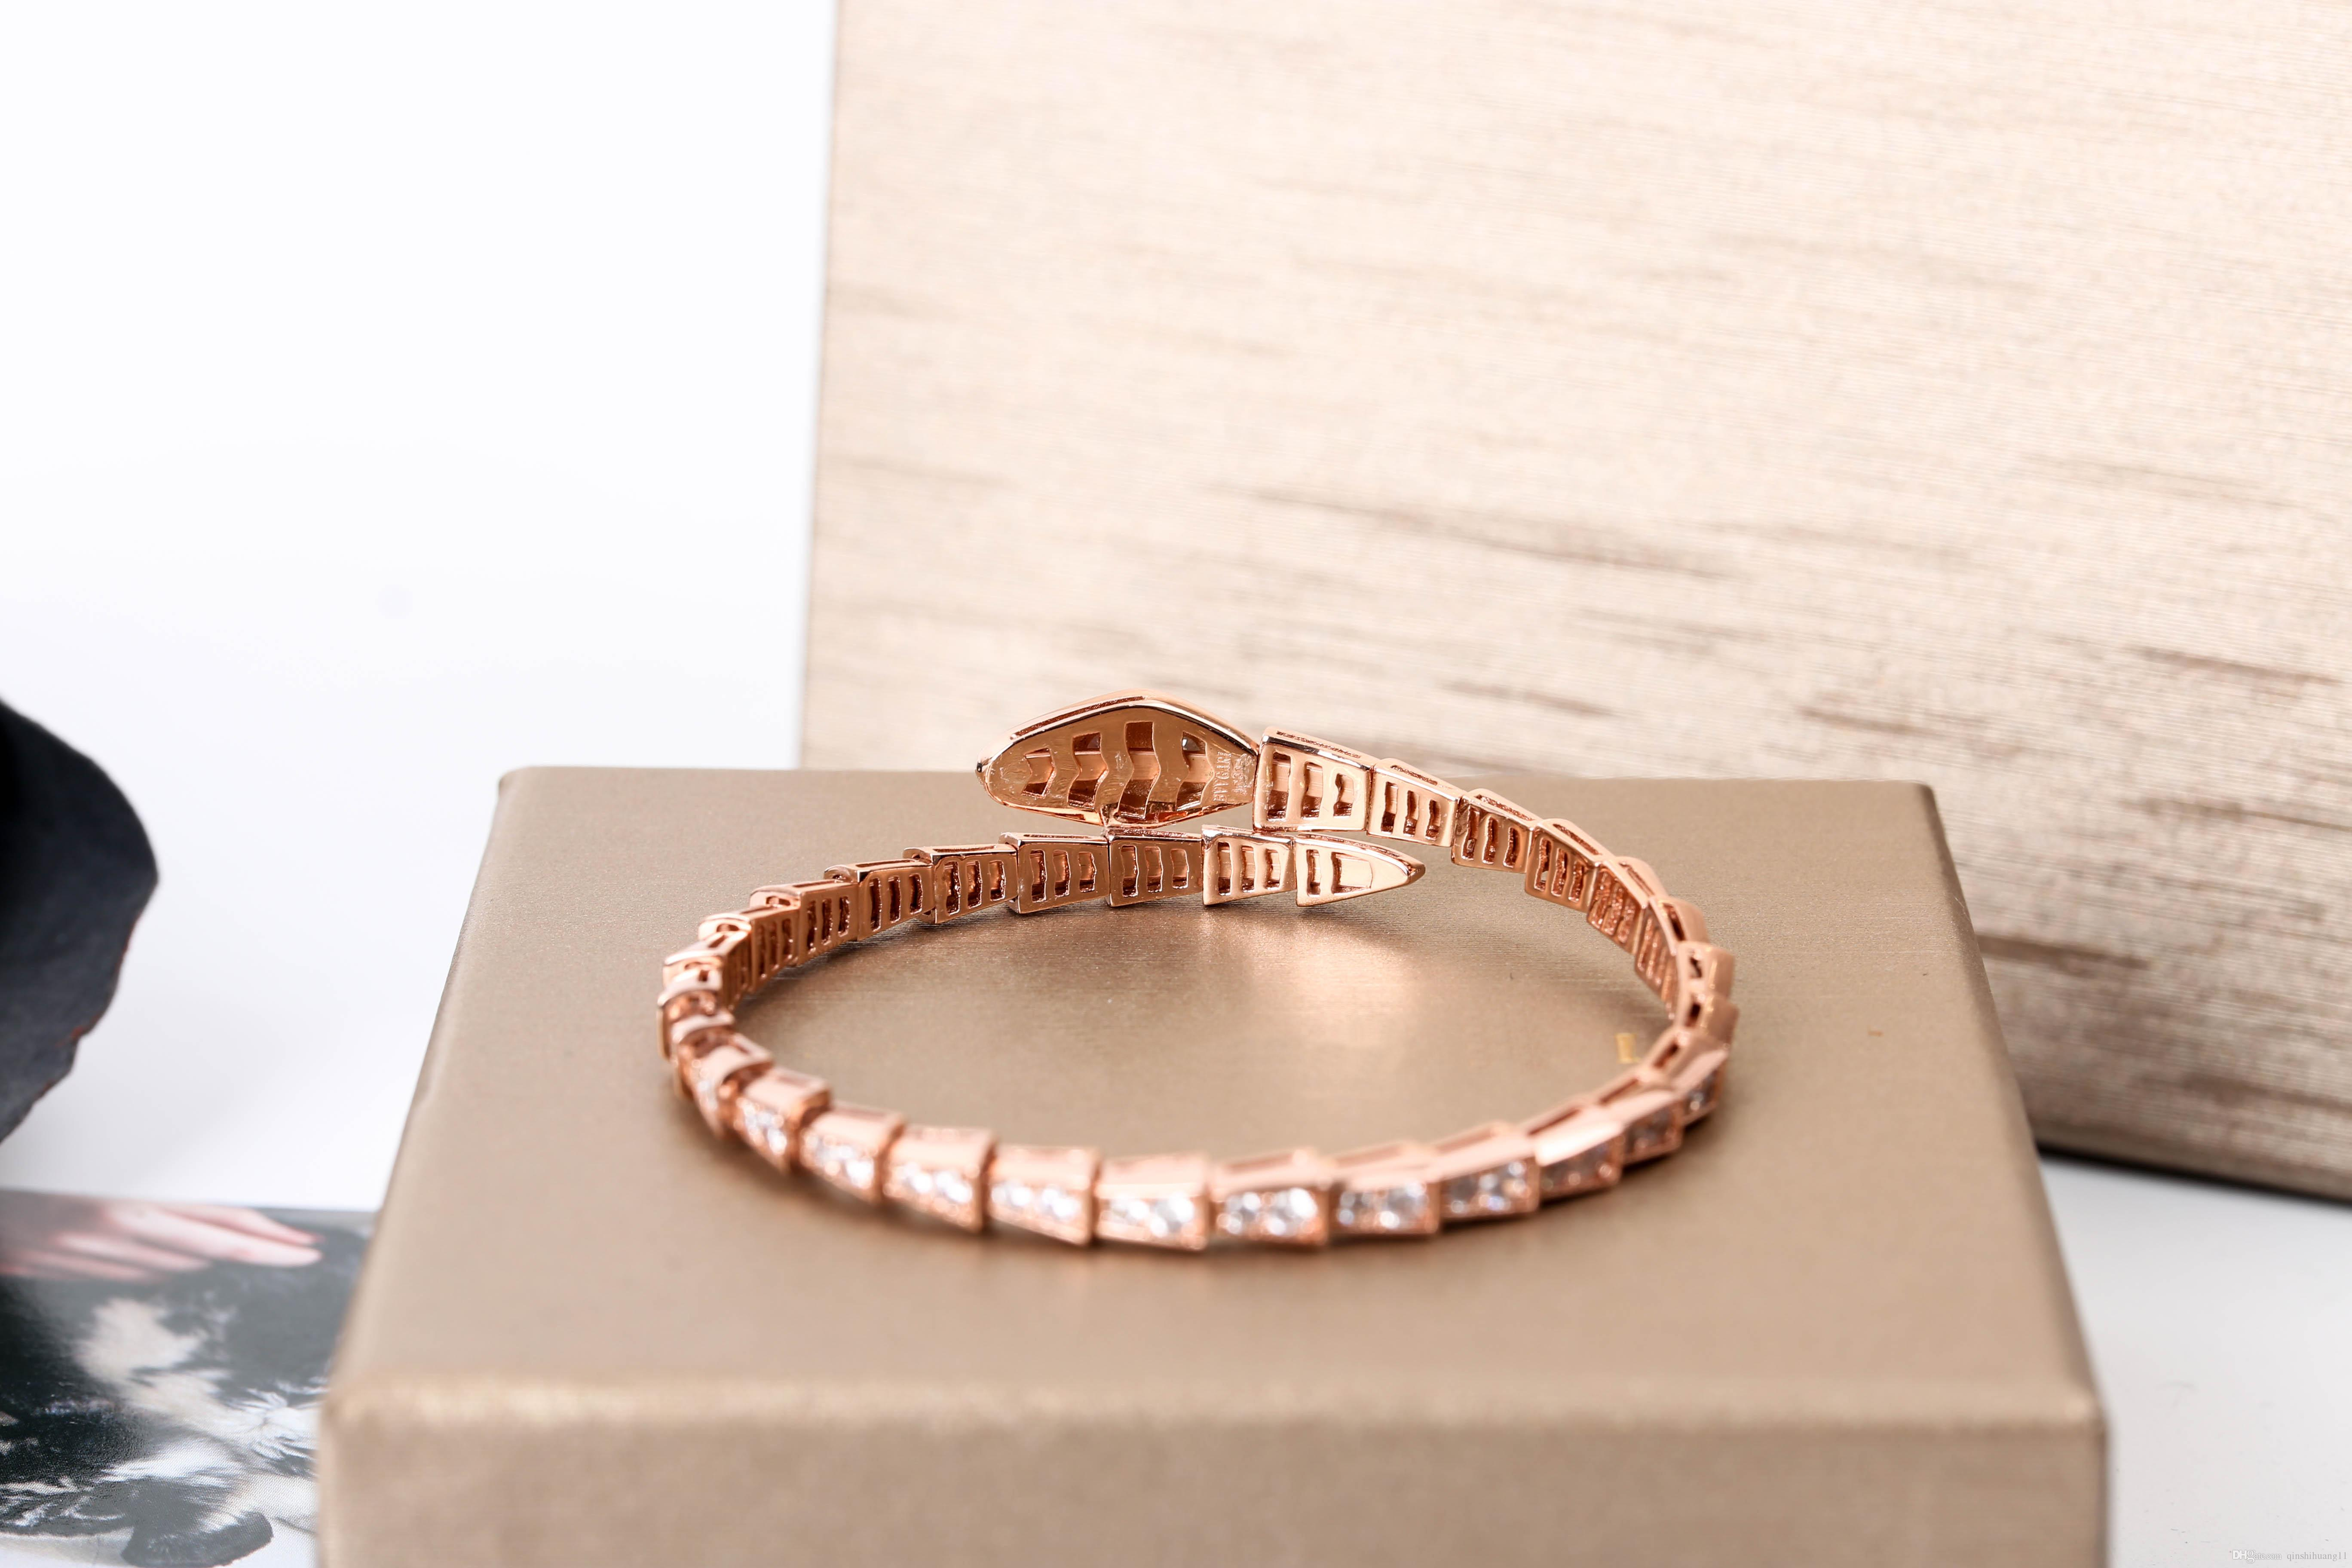 925 Silver Jewelry Pure Fund Snake Head Ring Bracelet Rose Gold Golden Serpentine Chain Bracelets For Women Fashion Bangles Brand